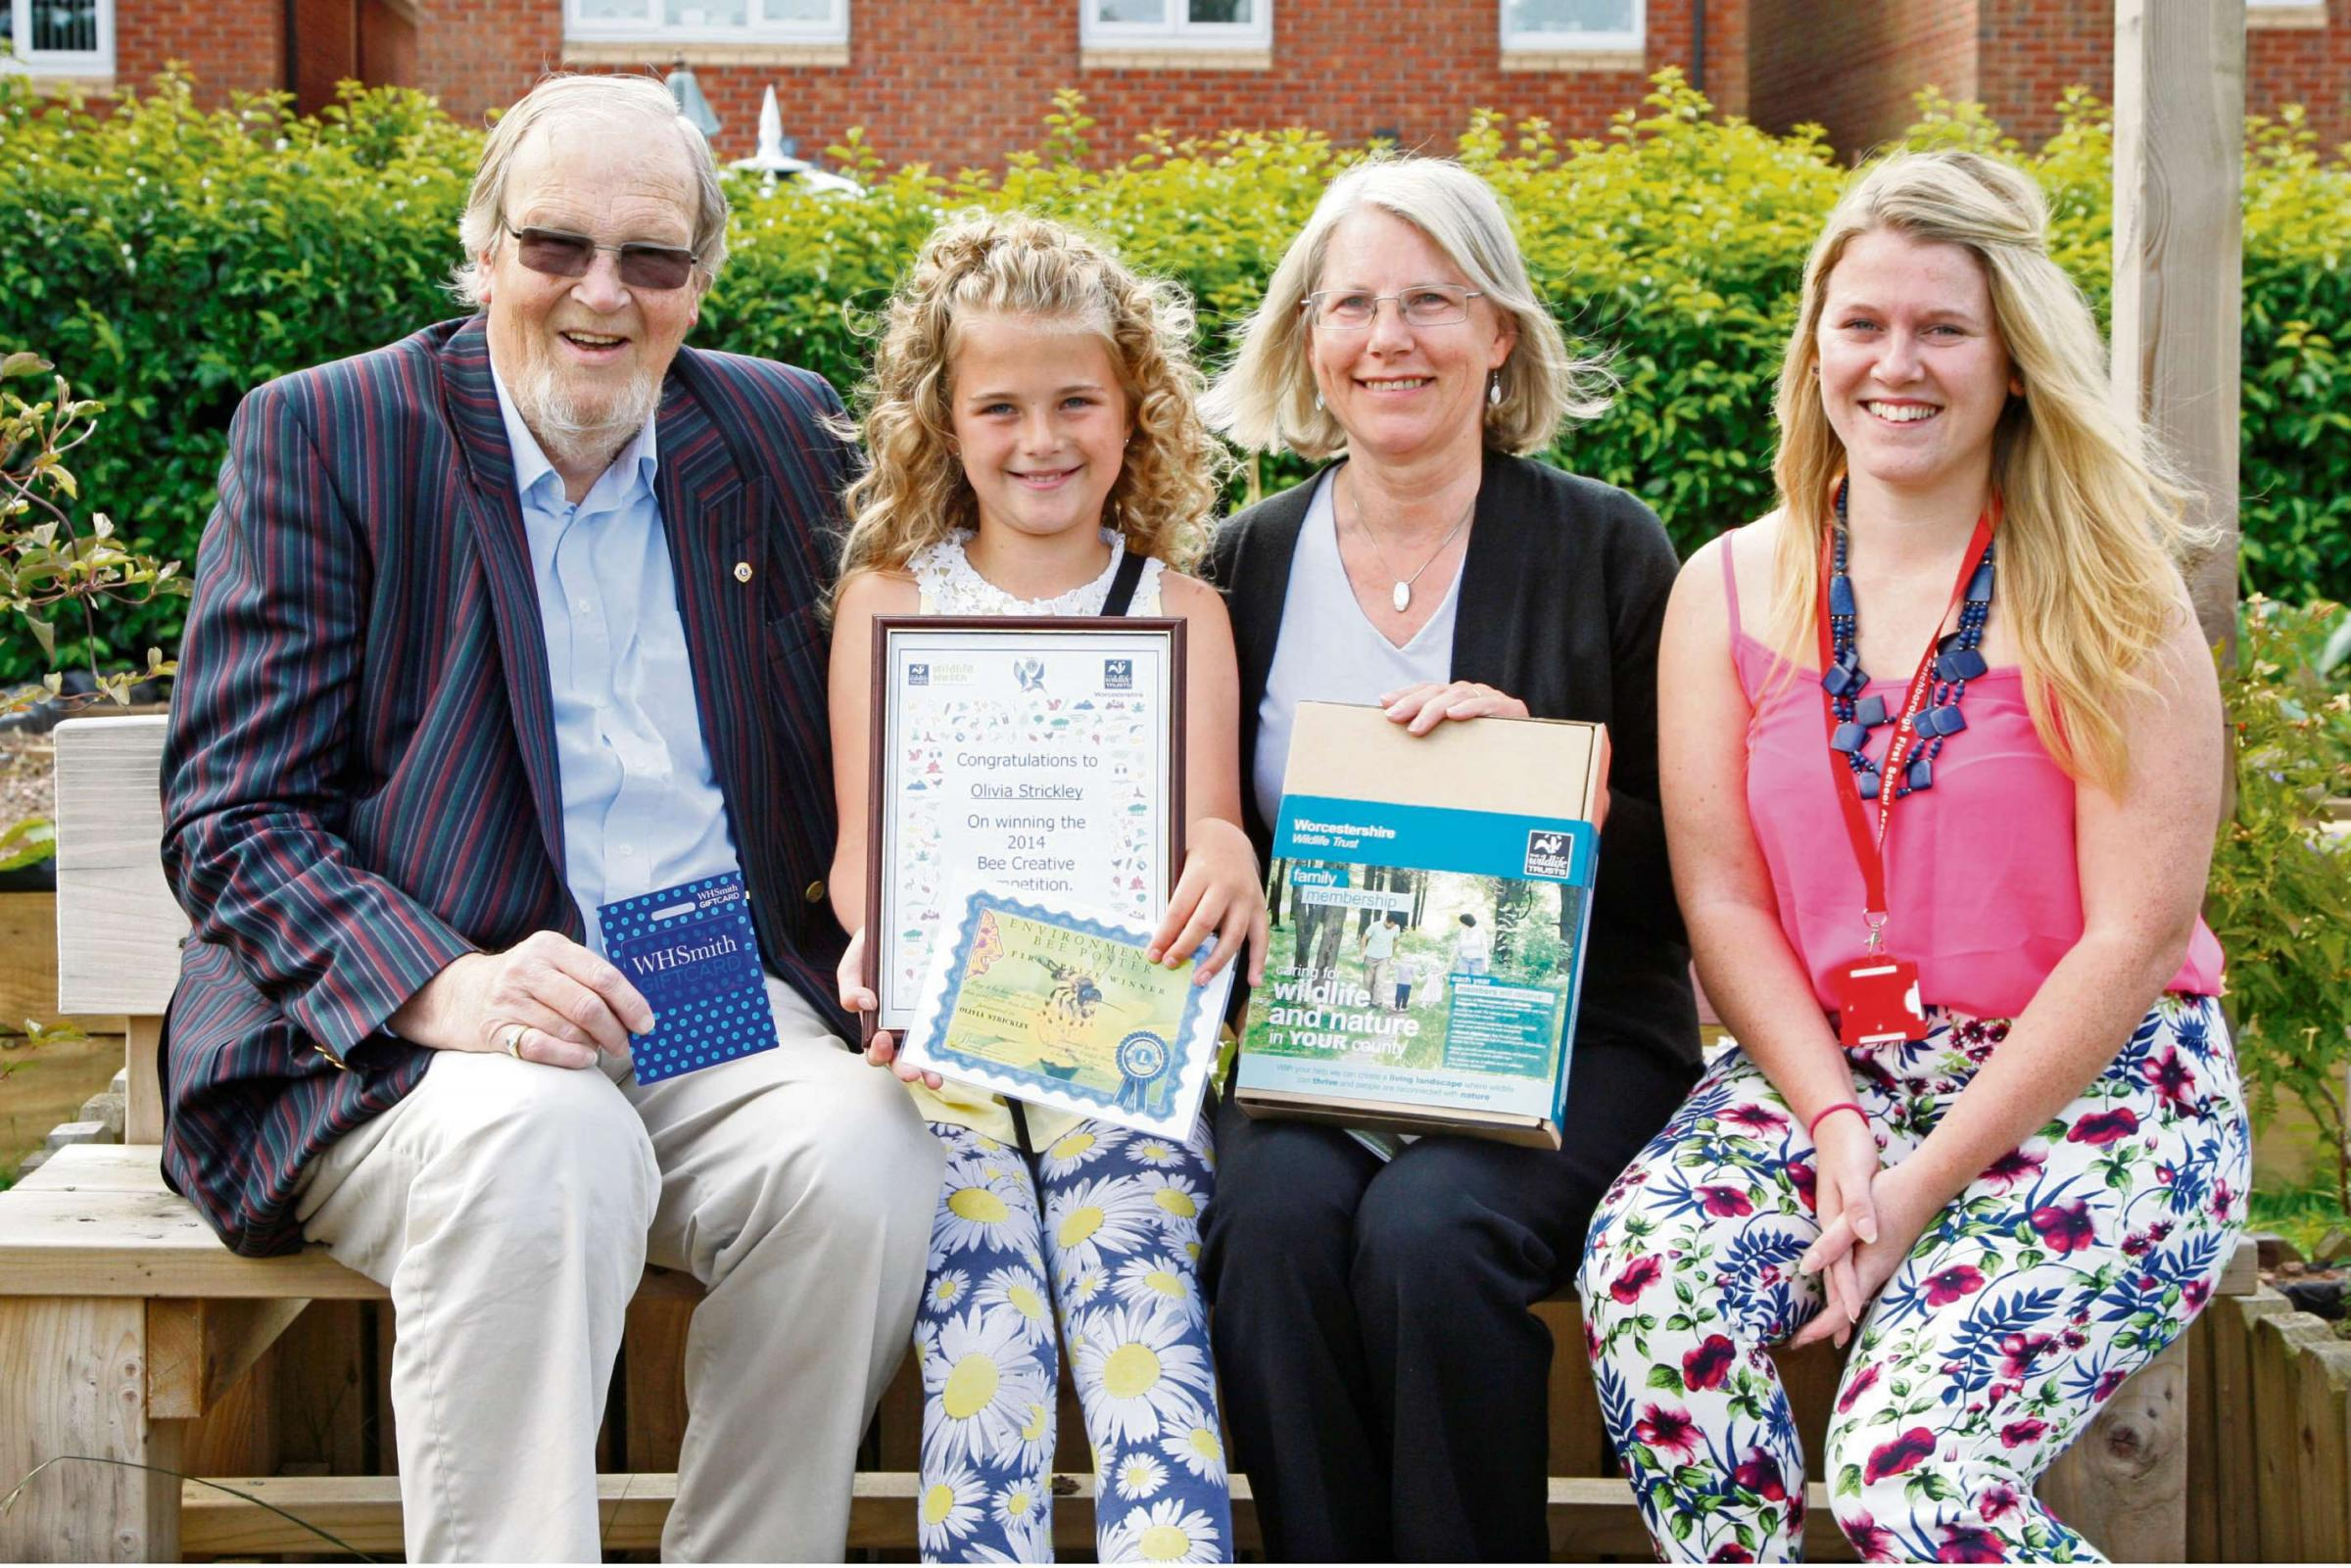 Victor Johnson from Redditch Lions, prize winner Olivia Strickley, Linda Butler from Worcestershire Wildlife Trust, and teacher Elizah Barnes. Buy this photo RCR291401_01from redditchadvertiser.co.uk/pictures